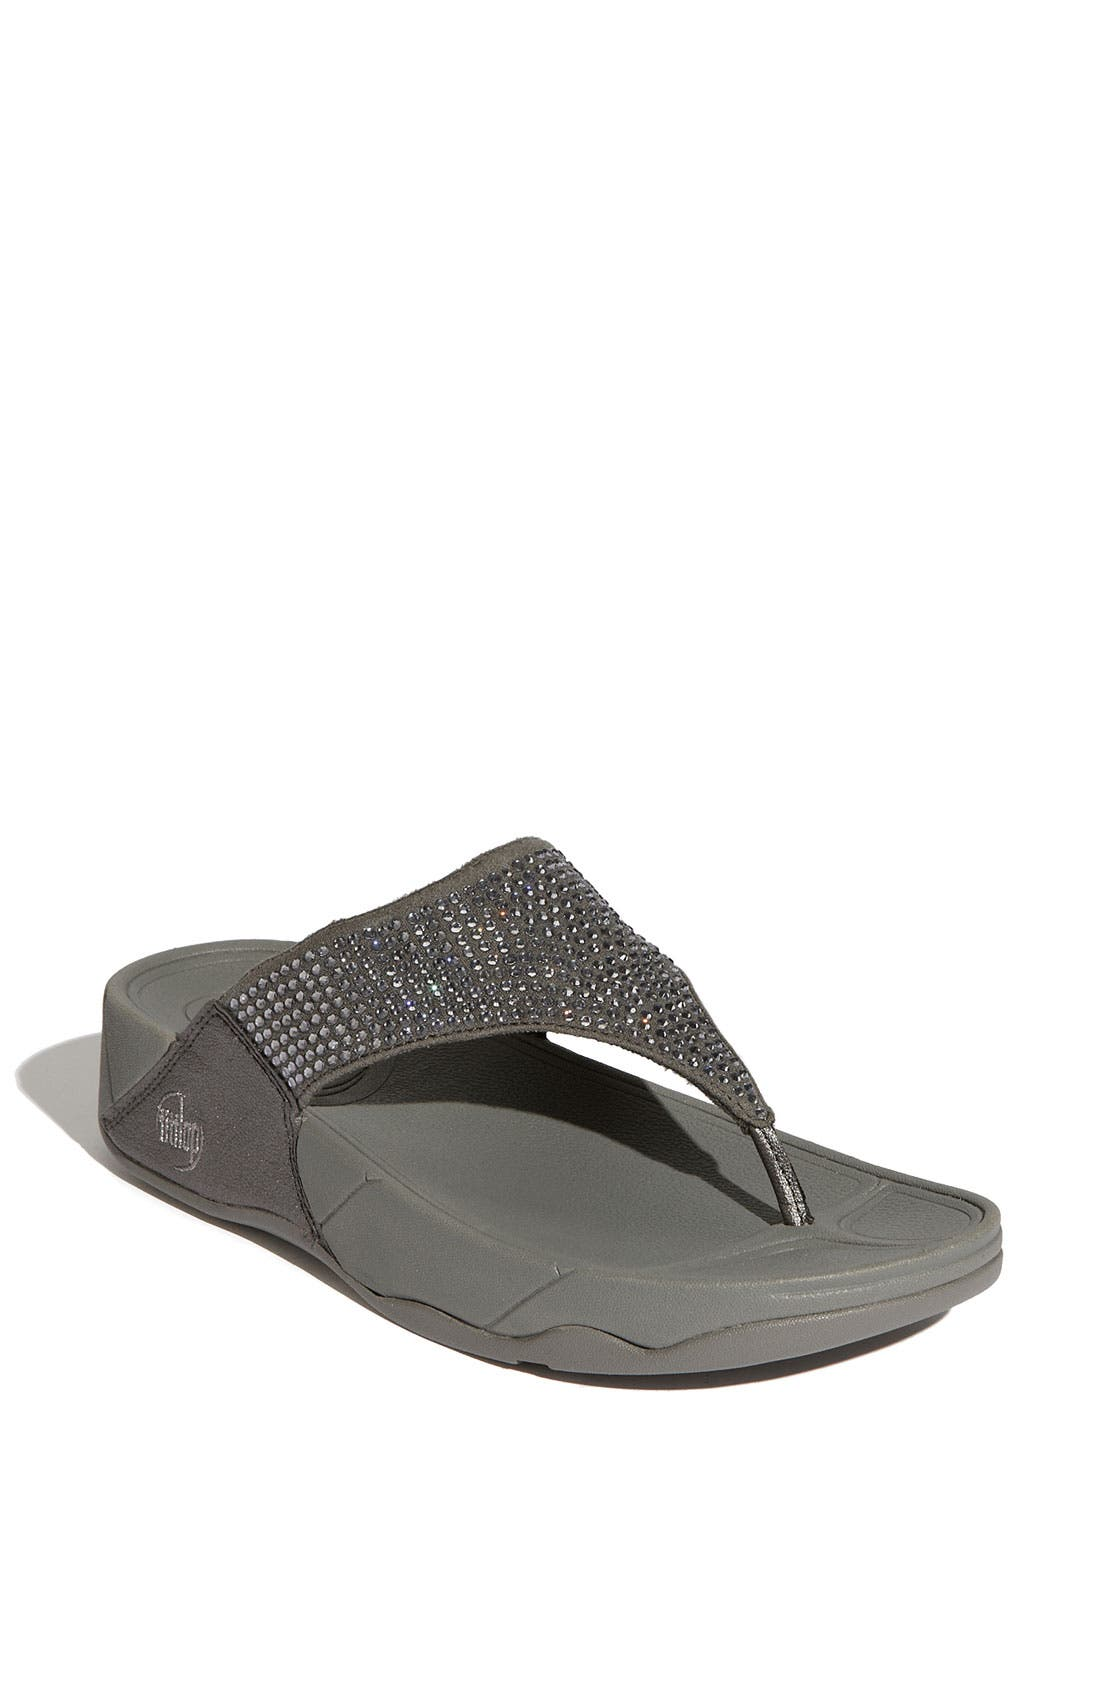 Main Image - FitFlop 'Rokkit' Sandal